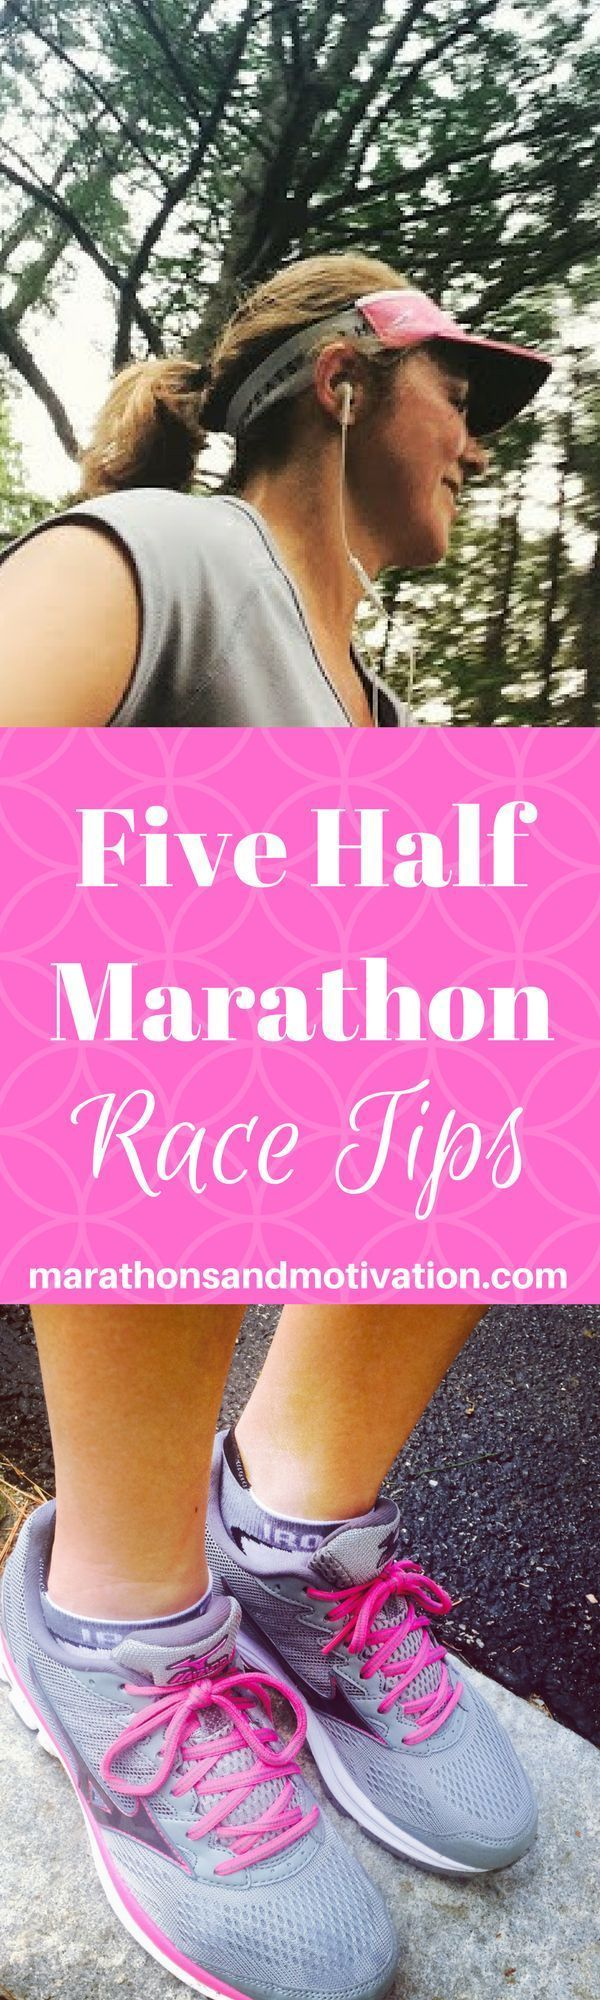 5 Tips for Half Marathon Race Day: Important Reminders for Running a Race